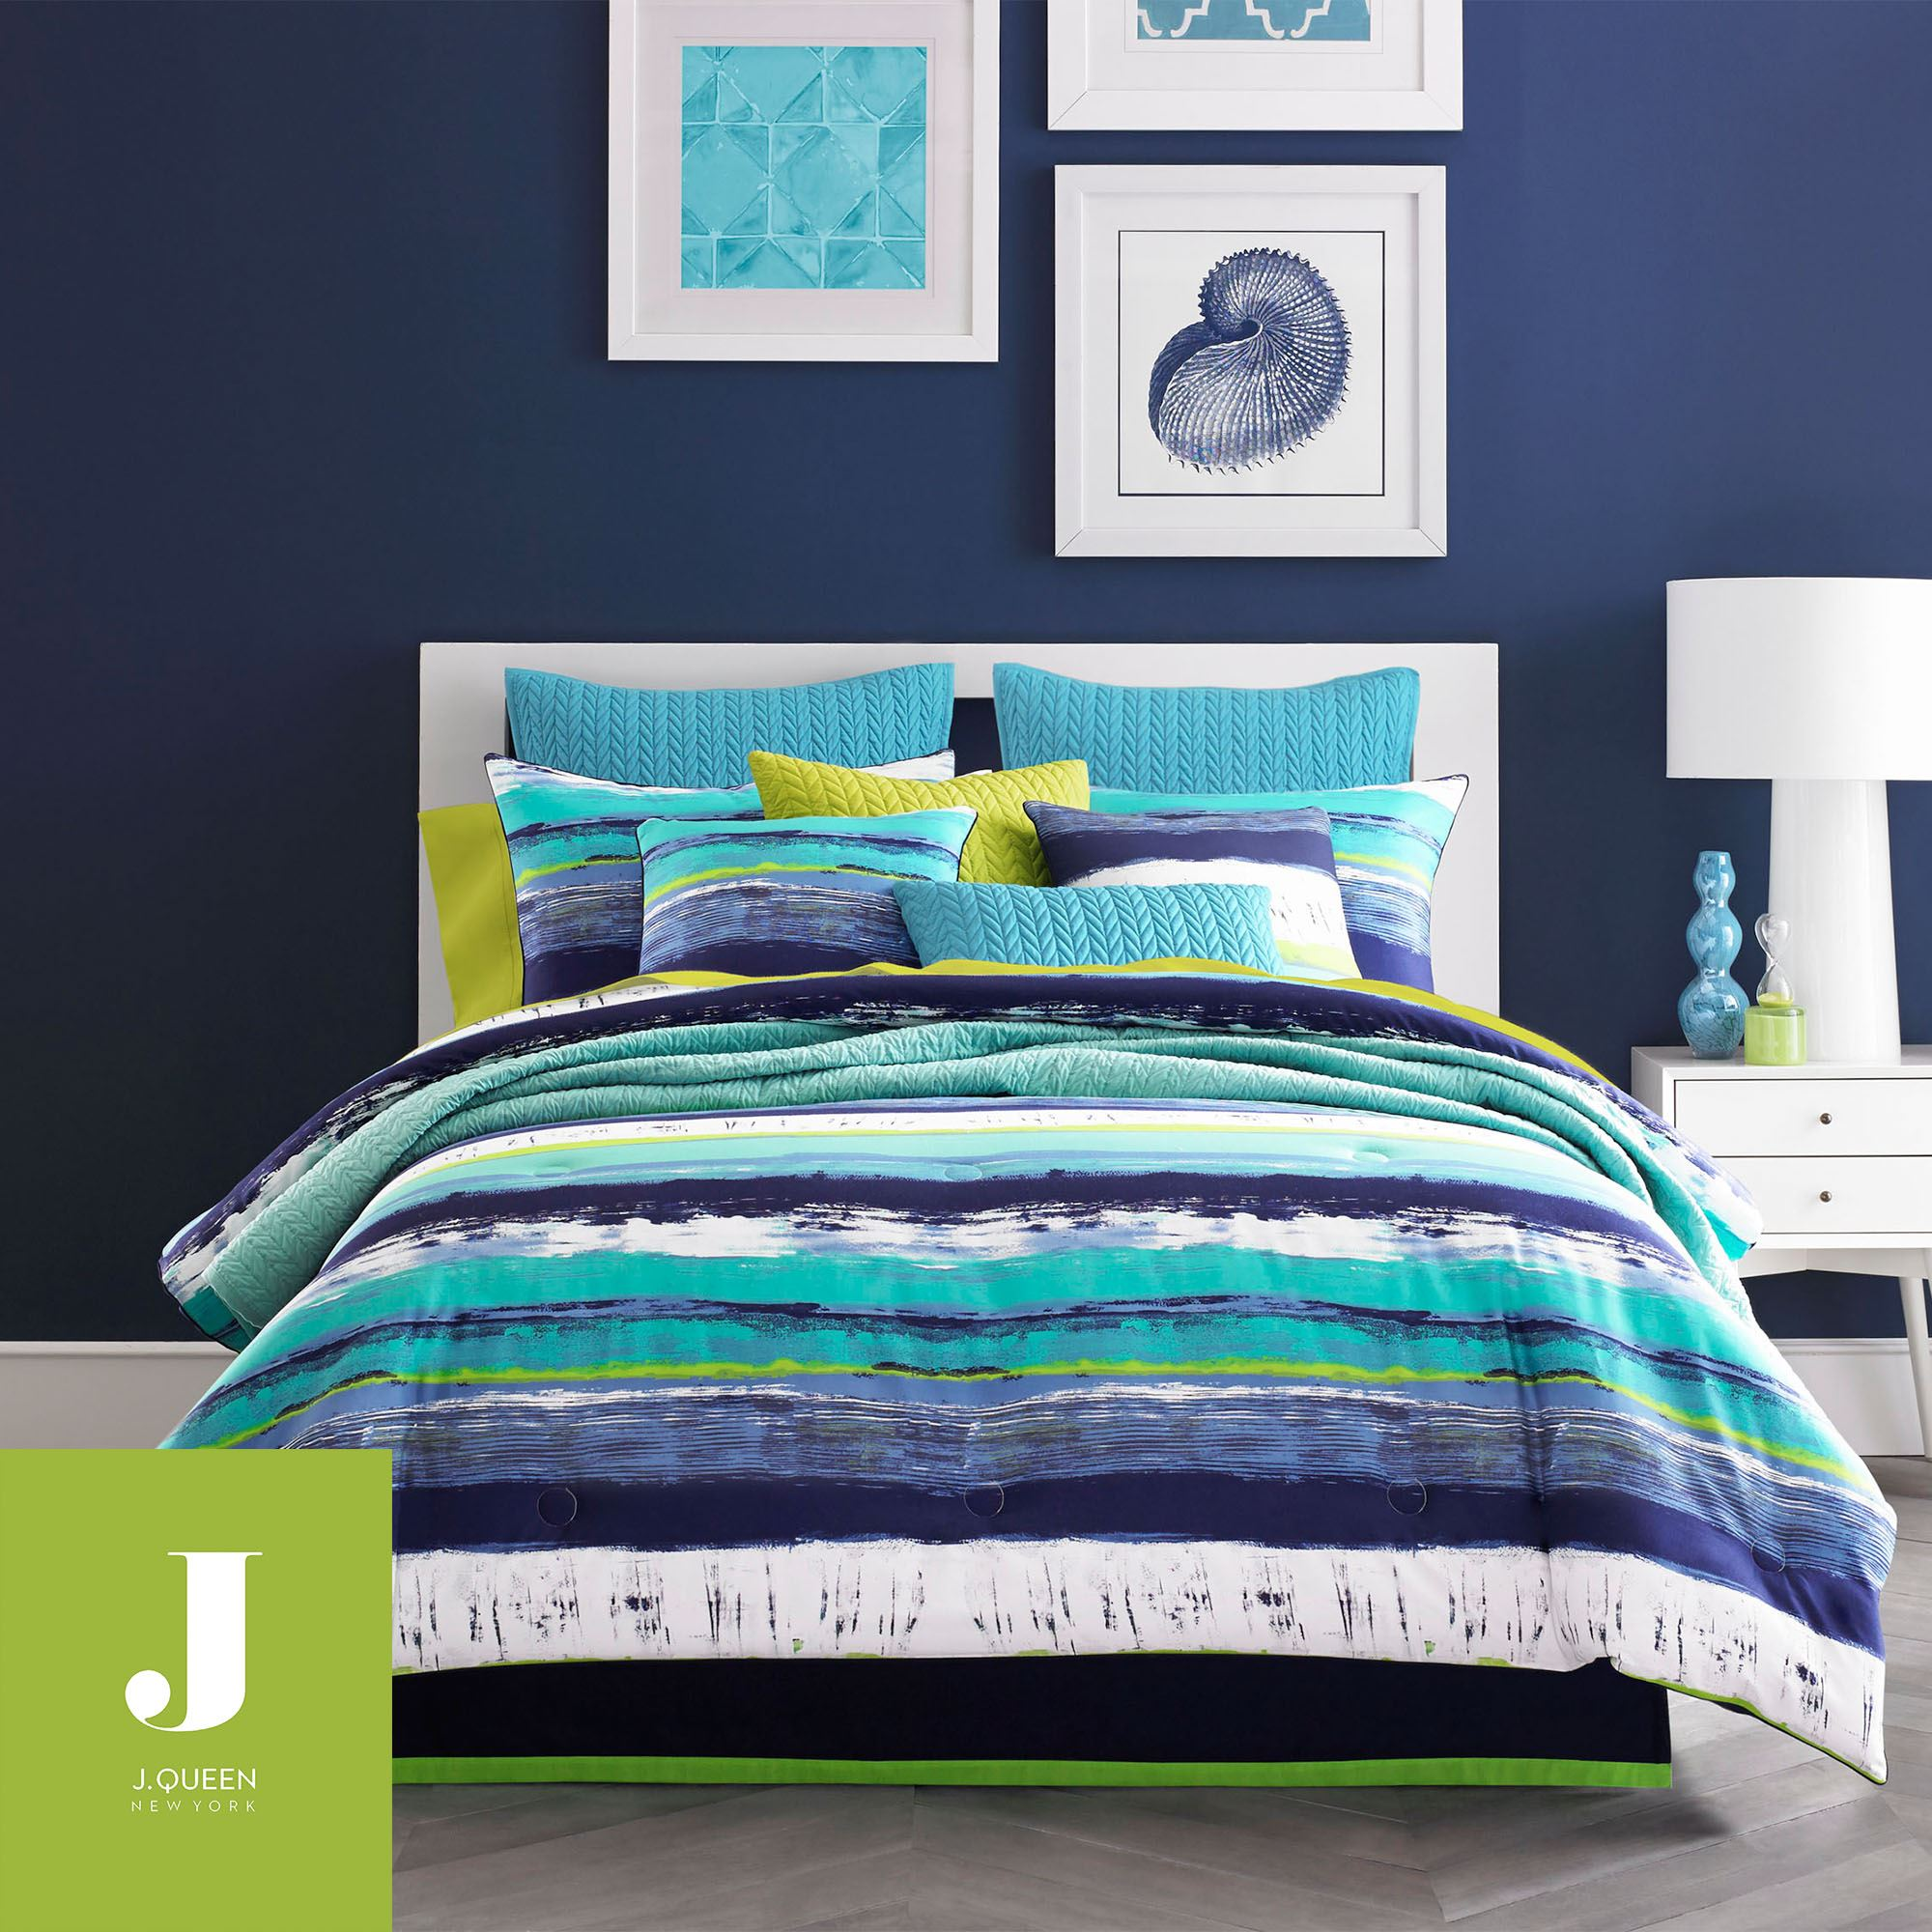 Cordoba Teal Comforter Bedding from J by J Queen New York